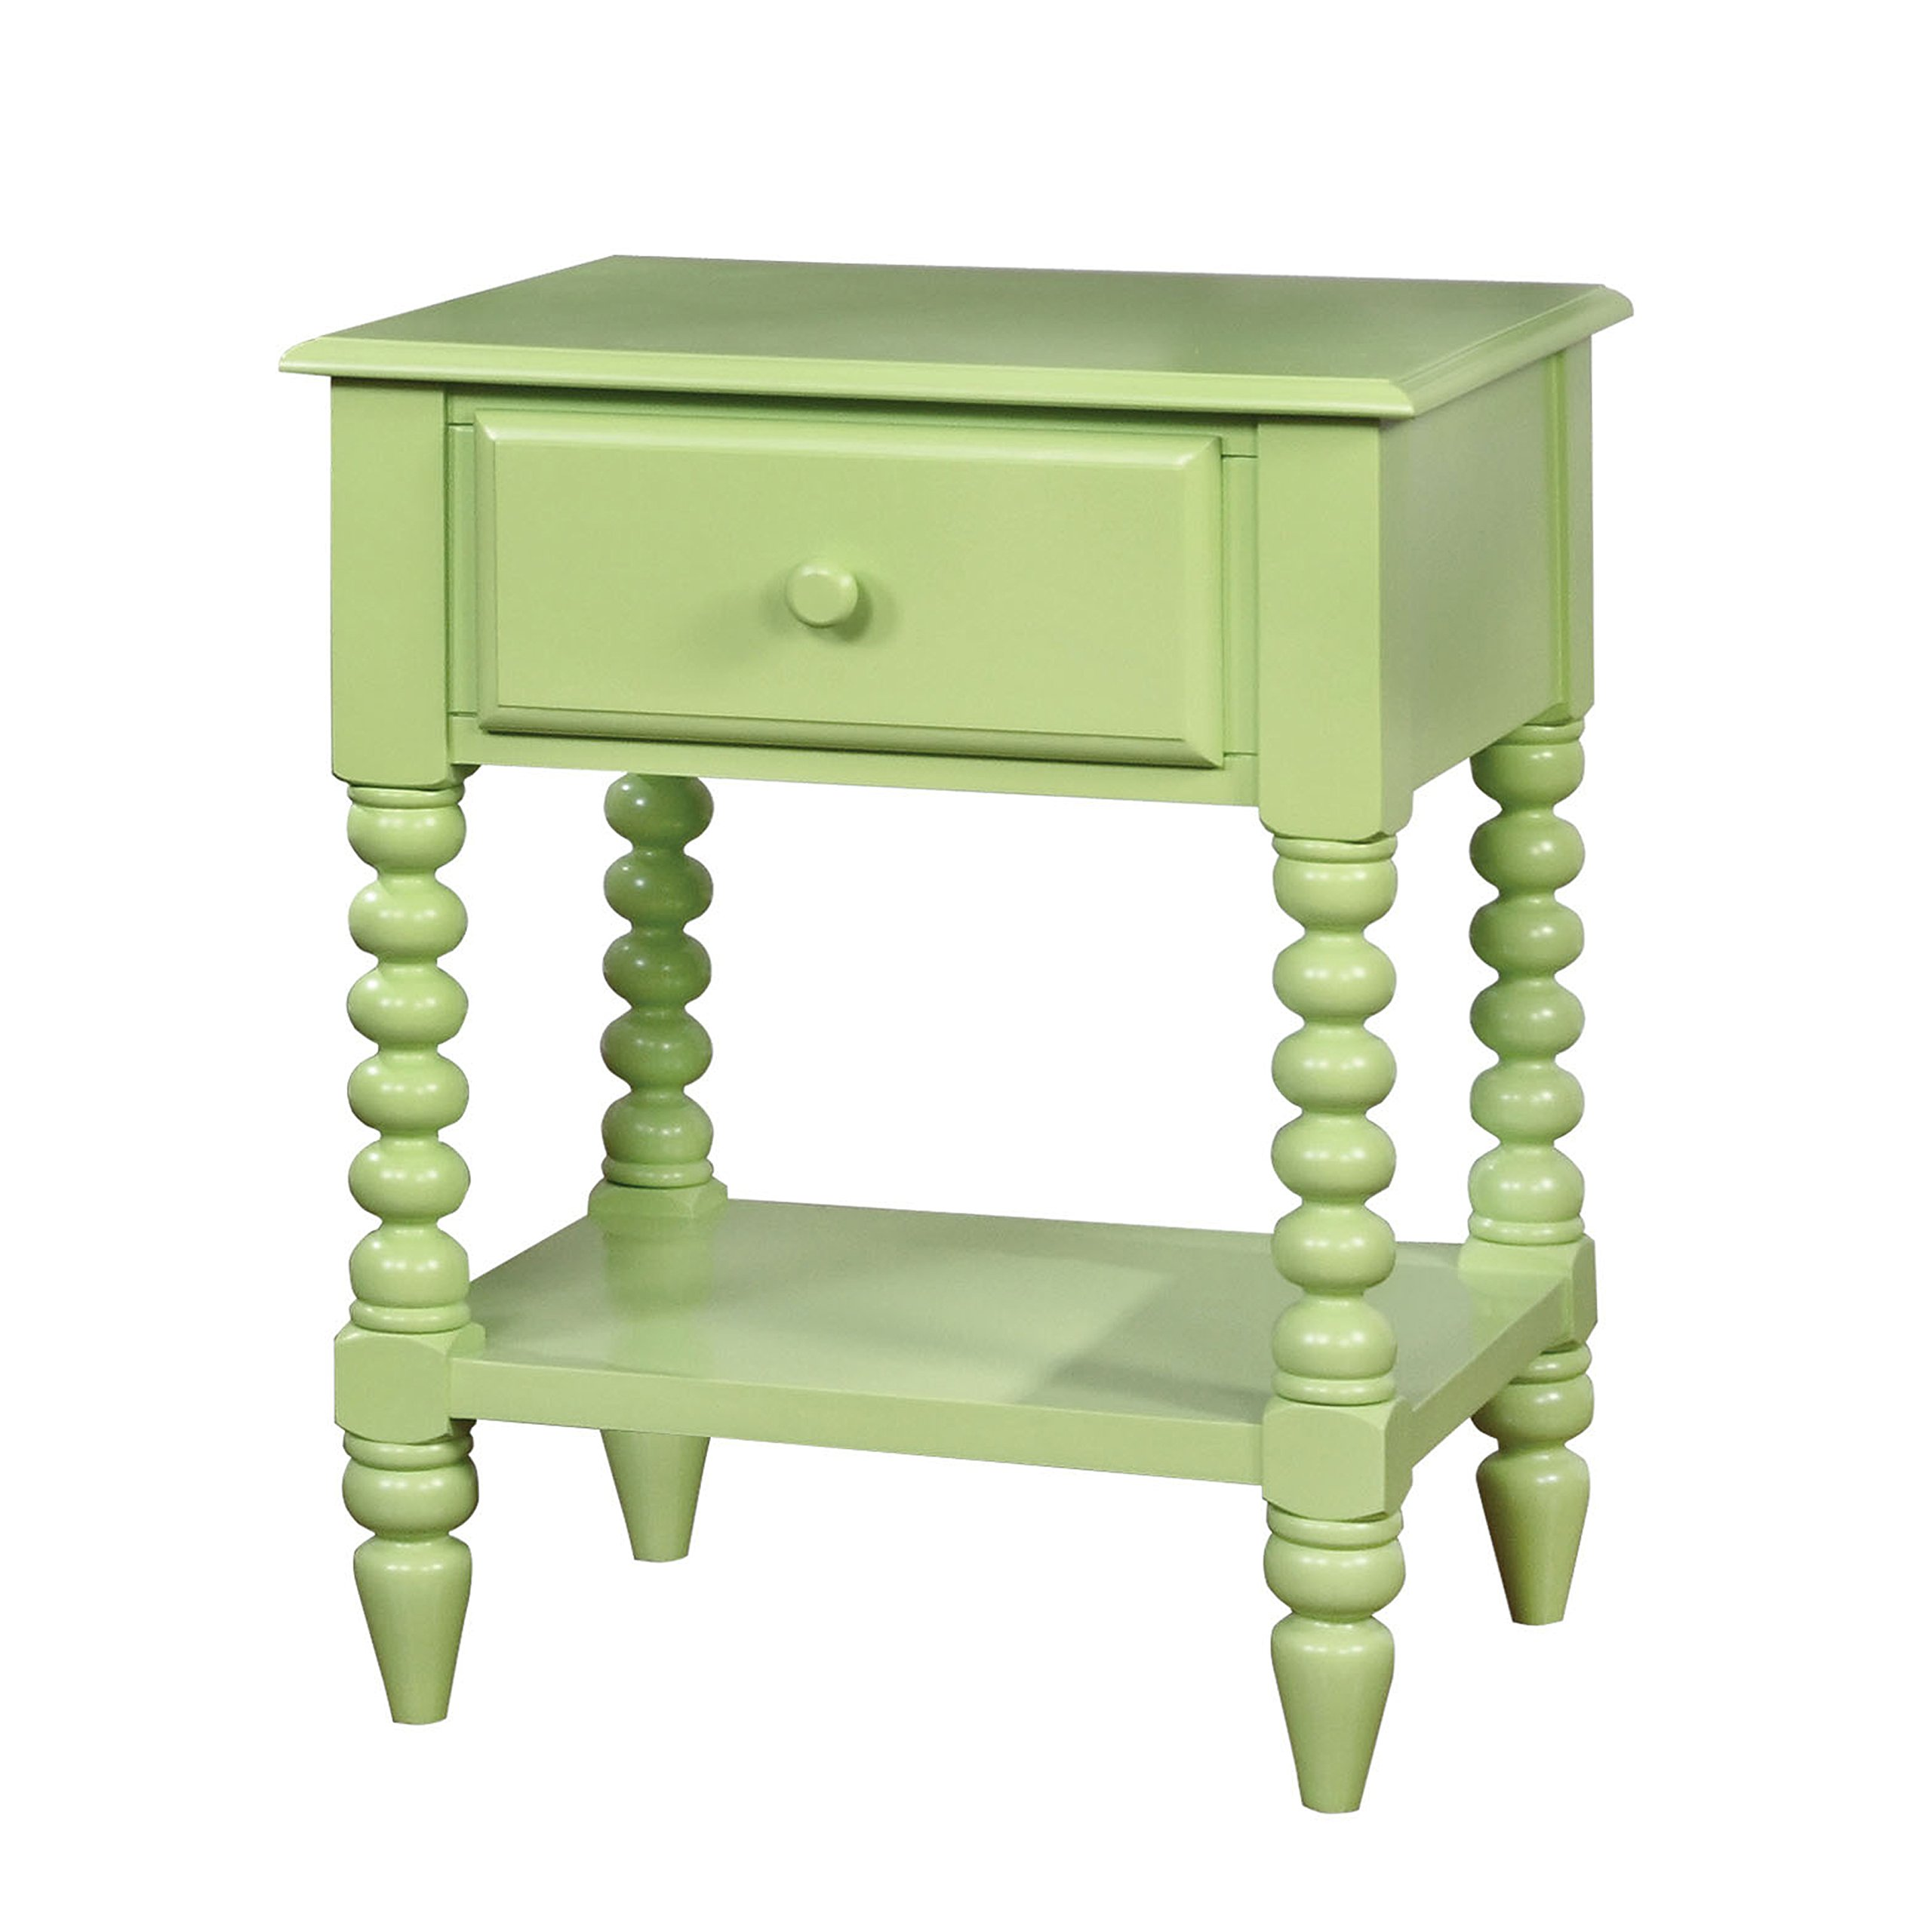 HOMES: Inside + Out IDF-AC323AG Dida Nightstand Childrens, Apple Green